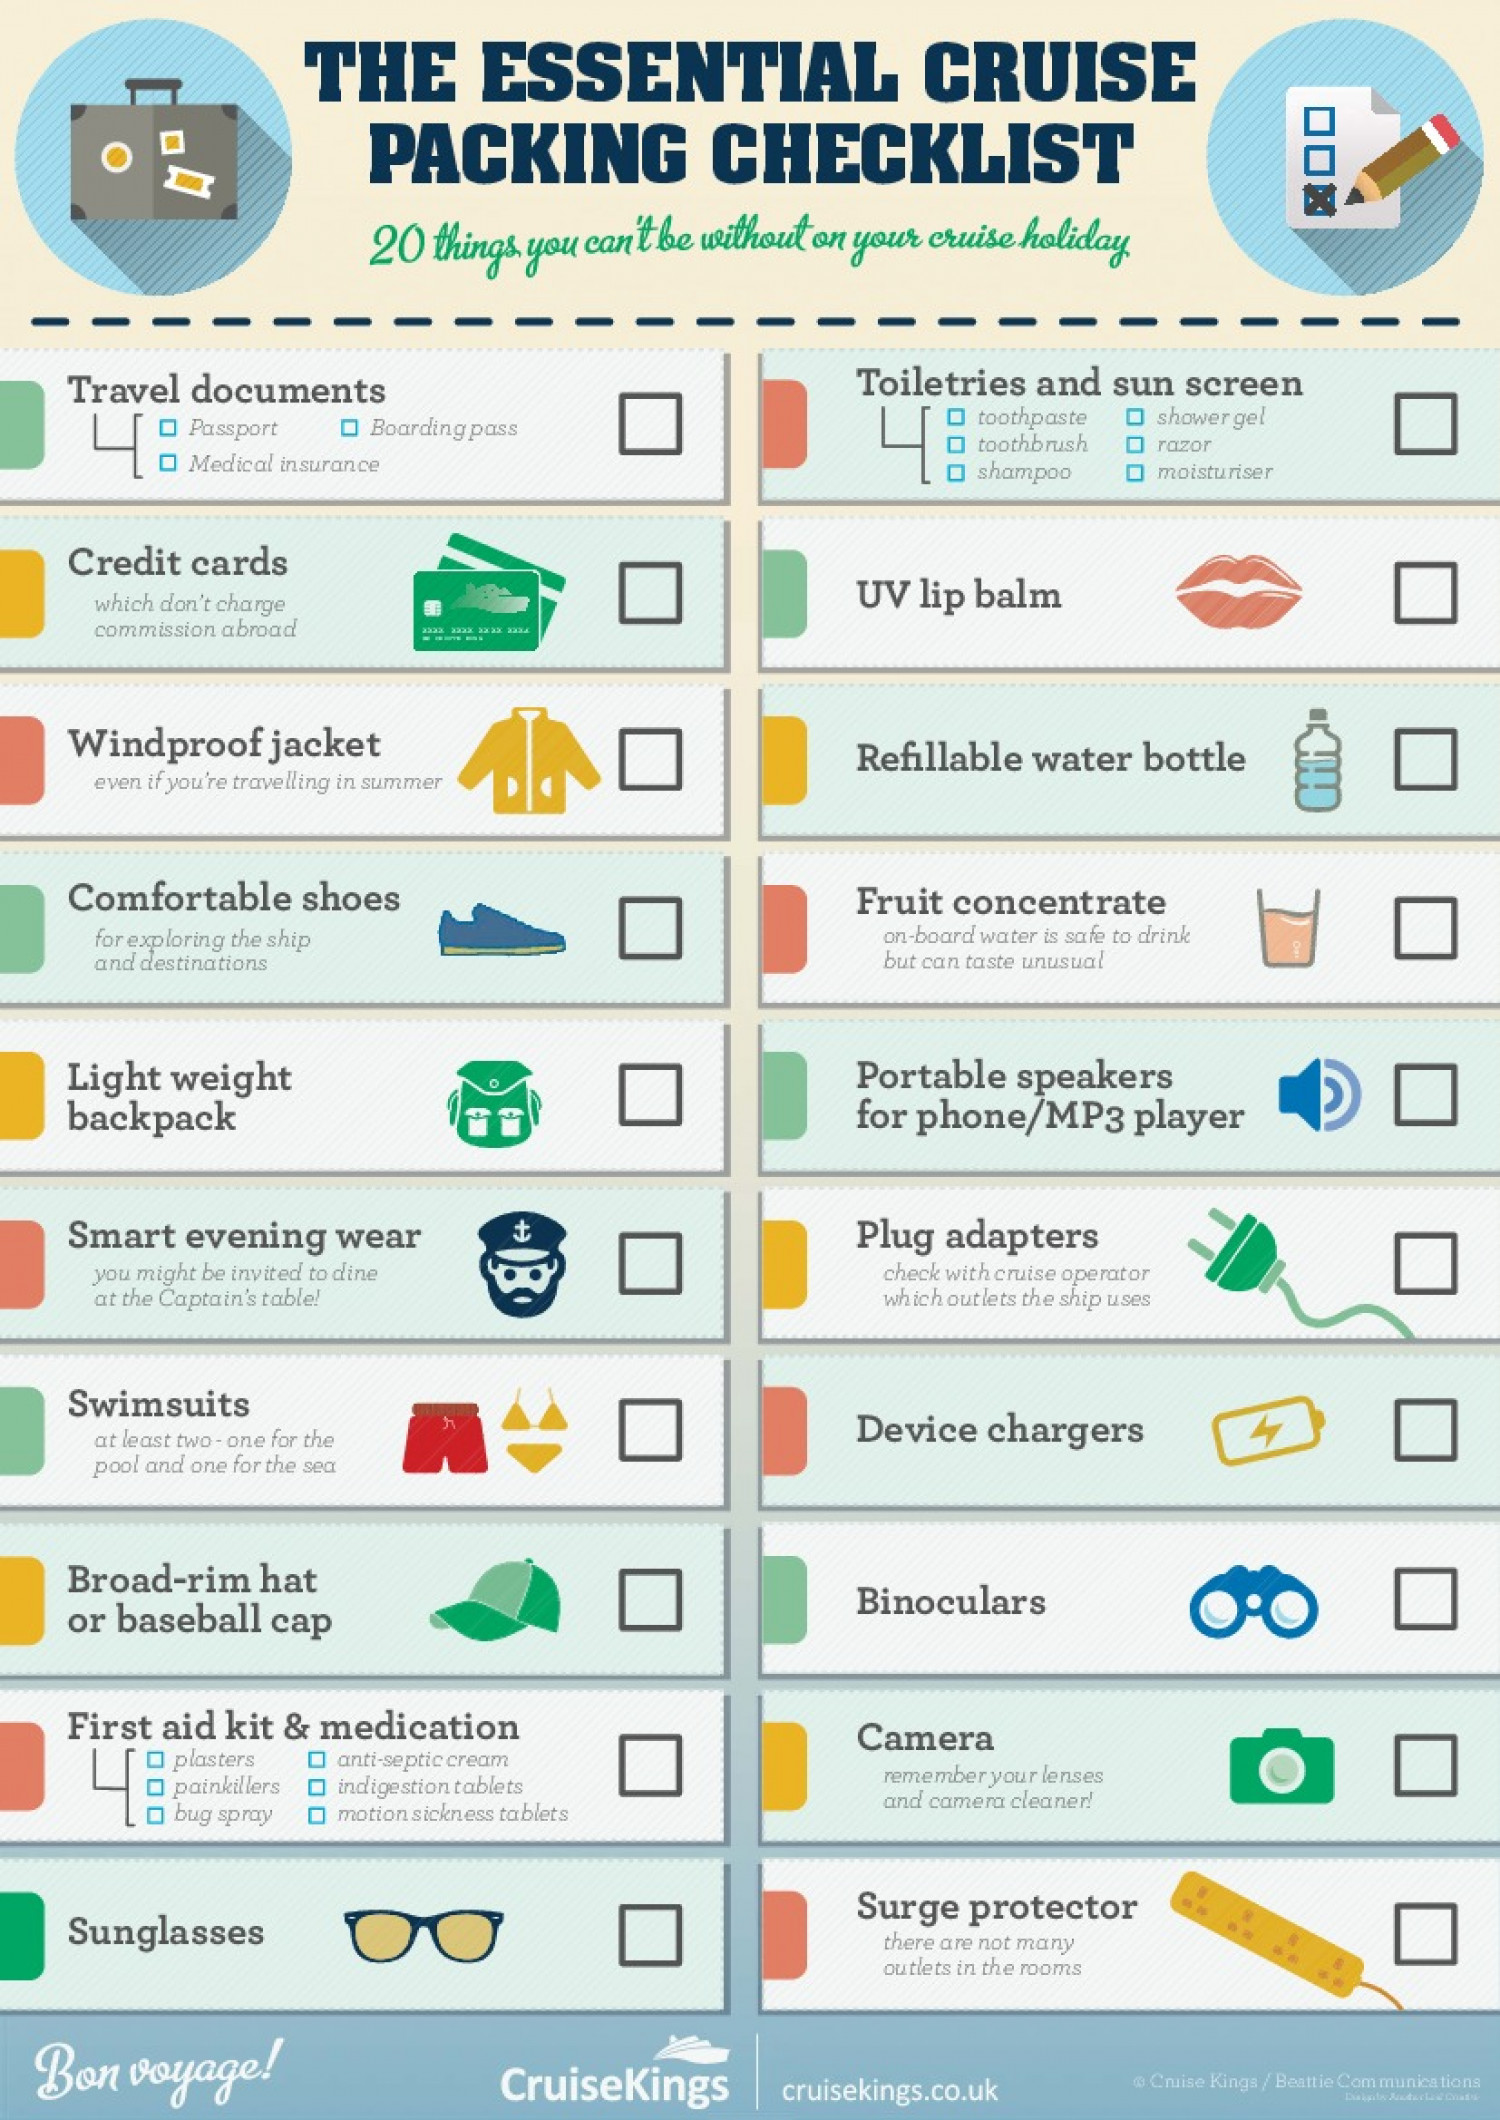 Cruisekings Co Uk The Essential Cruise Packing Checklist